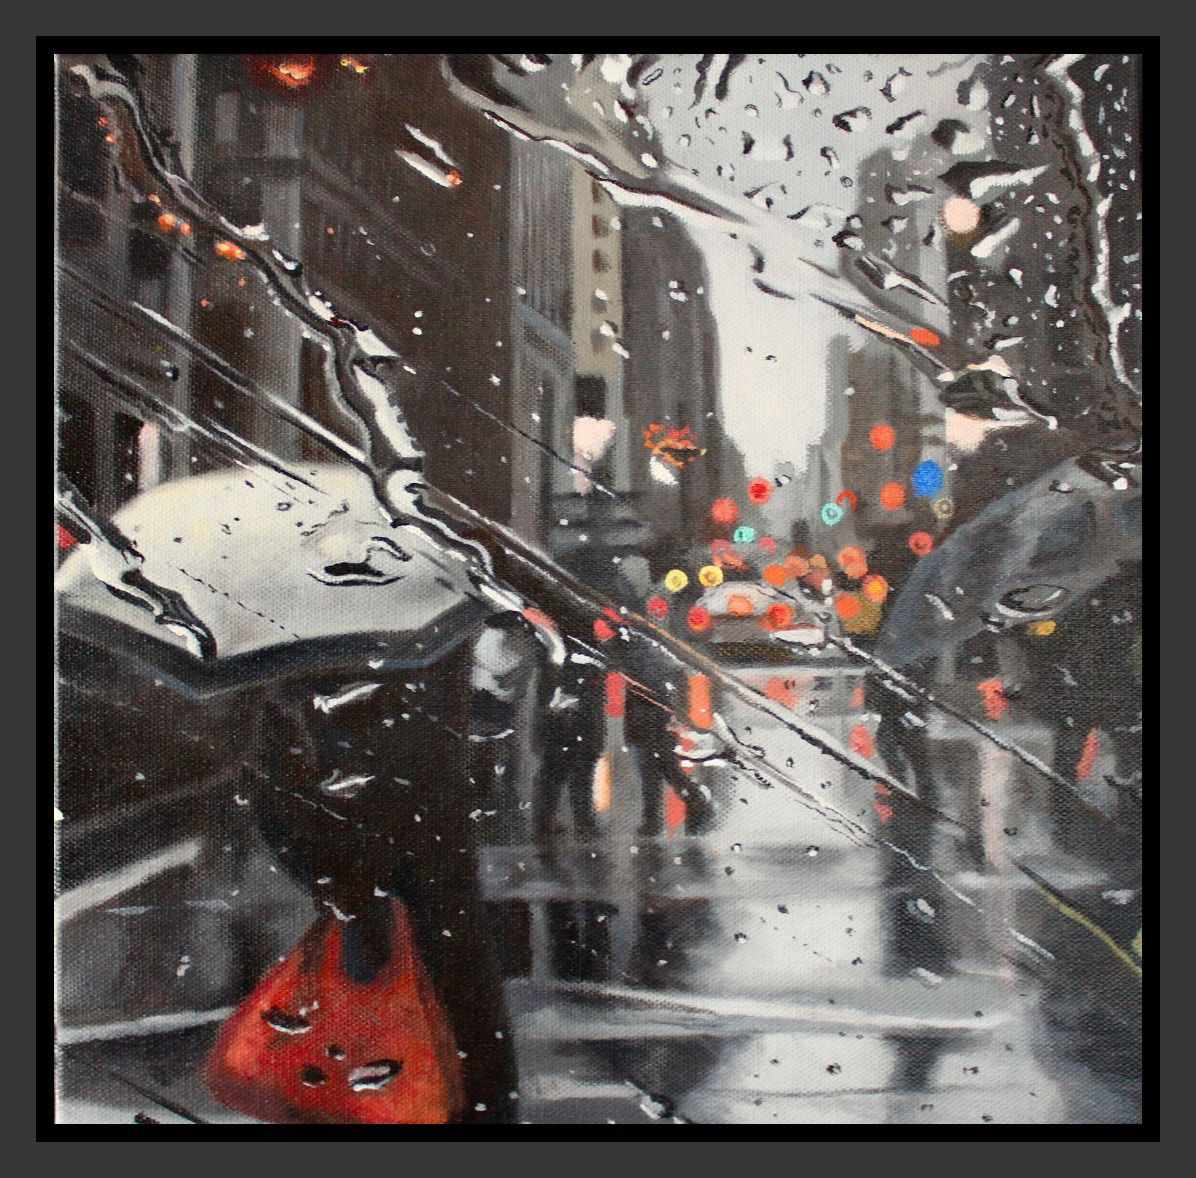 We are now LIVE with unseen works by Michael Steinbrick. Join us on Thursday at 8pm to listen to Michael Steinbrick talk about his wonderful artworks.  #newyork #fillyourheartwithireland #tourism #ireland #gettingtoknowyouseries #gettingtoknowmichaelsteinbrick #onlineexhibitions